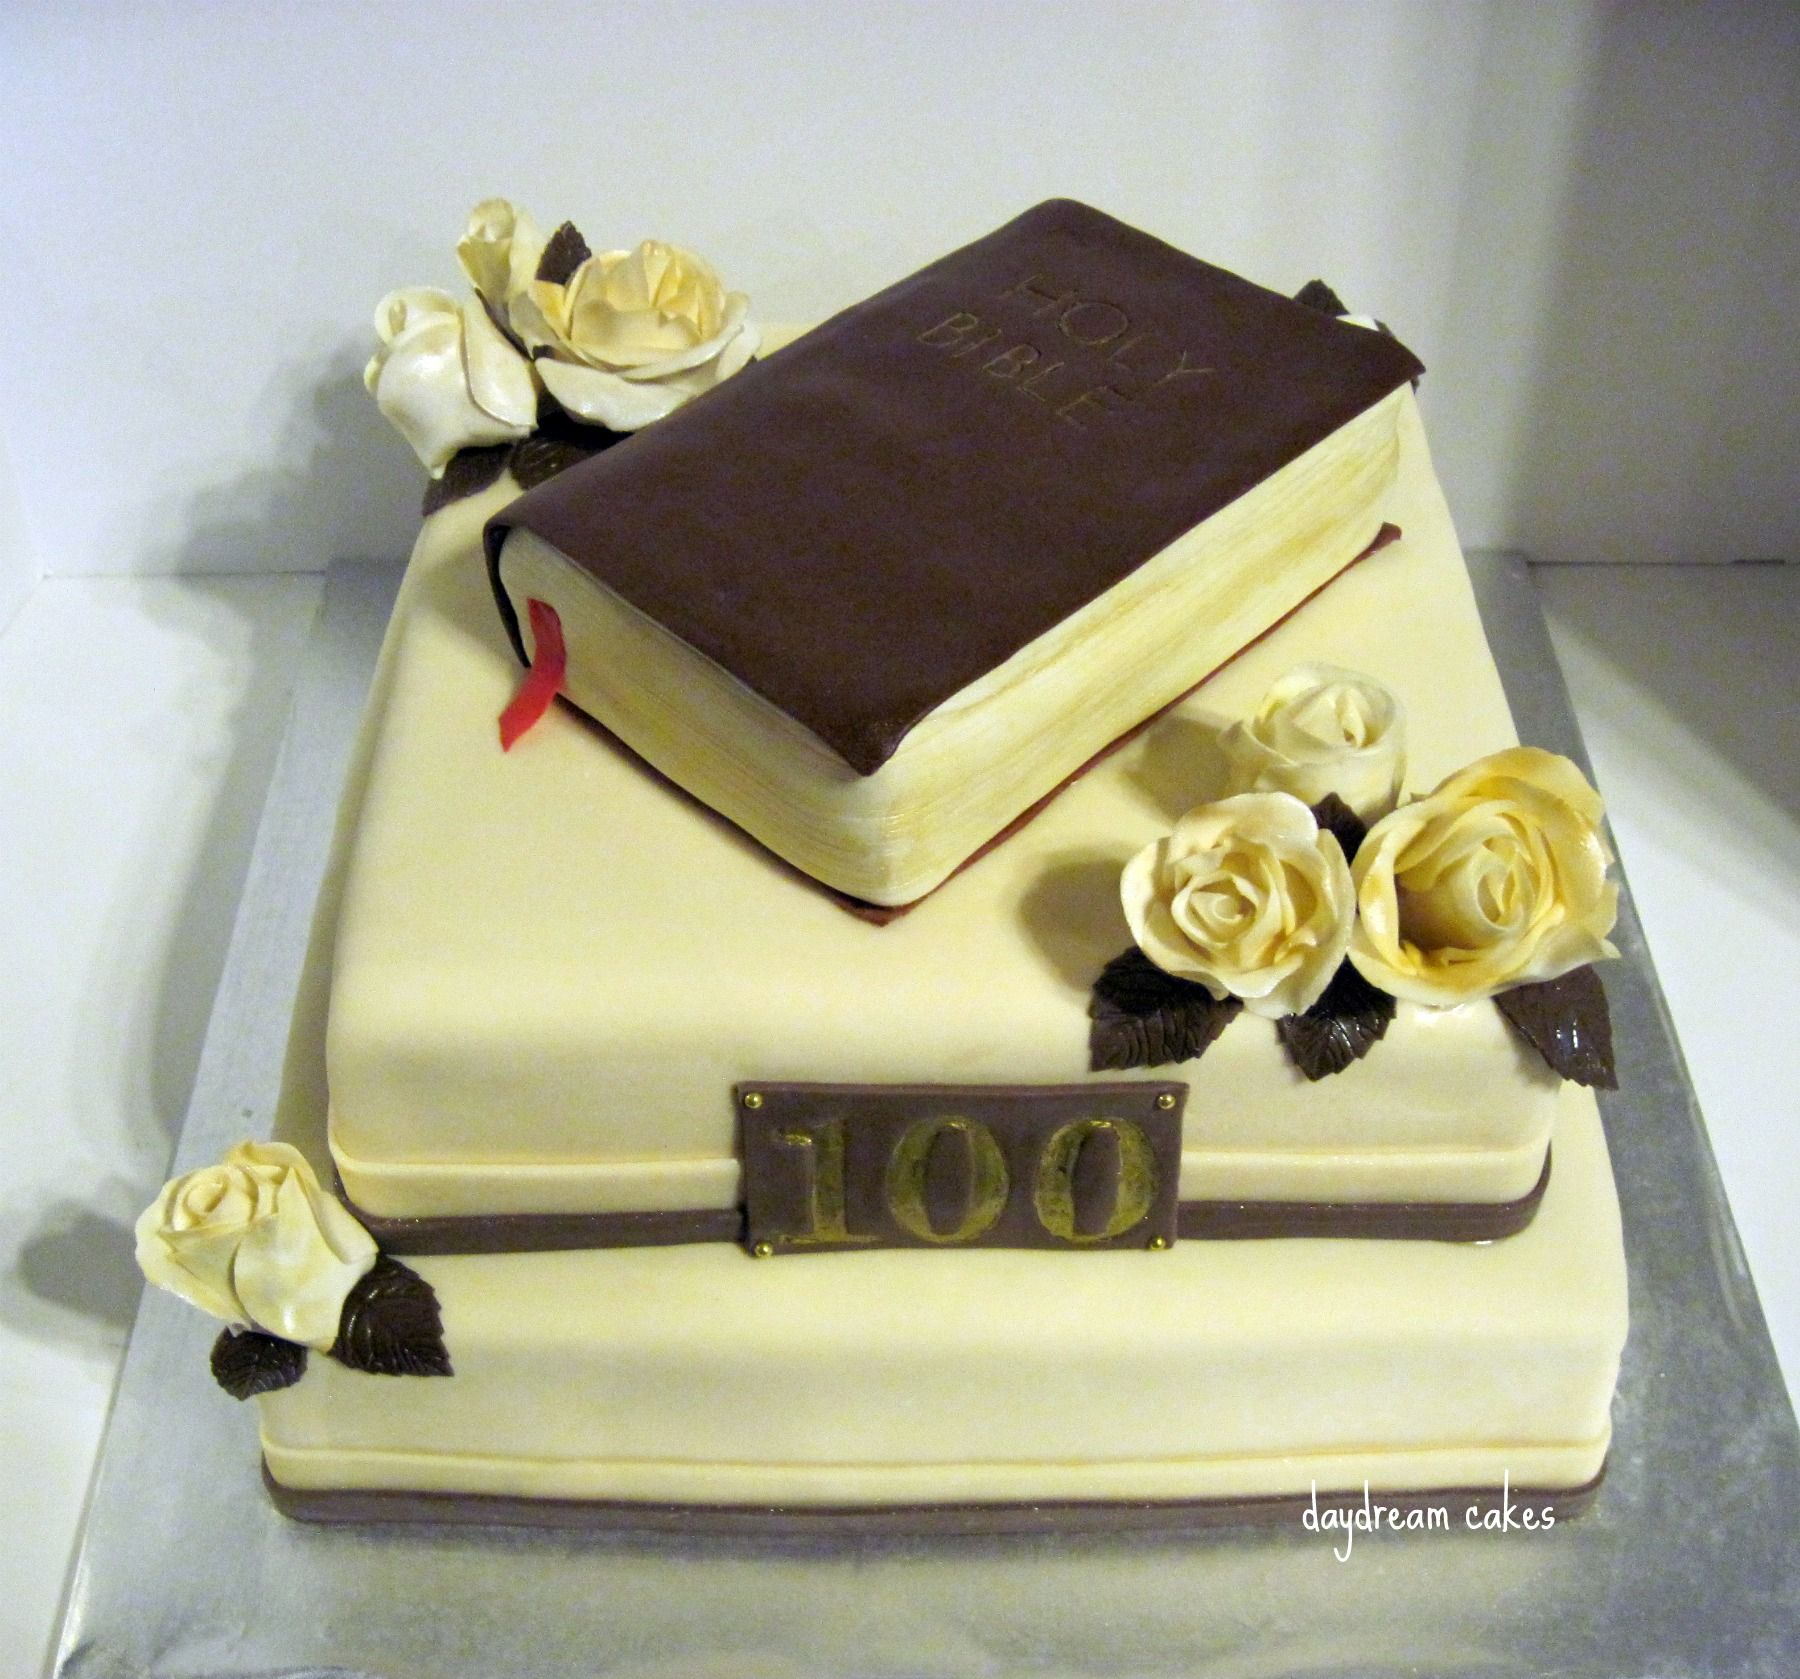 Church Anniversary - 100th Church Anniversary Celebration cake. First attempt at gumpaste/fondant roses. Inspired by meomy's beautiful Bible Anniversary Cake